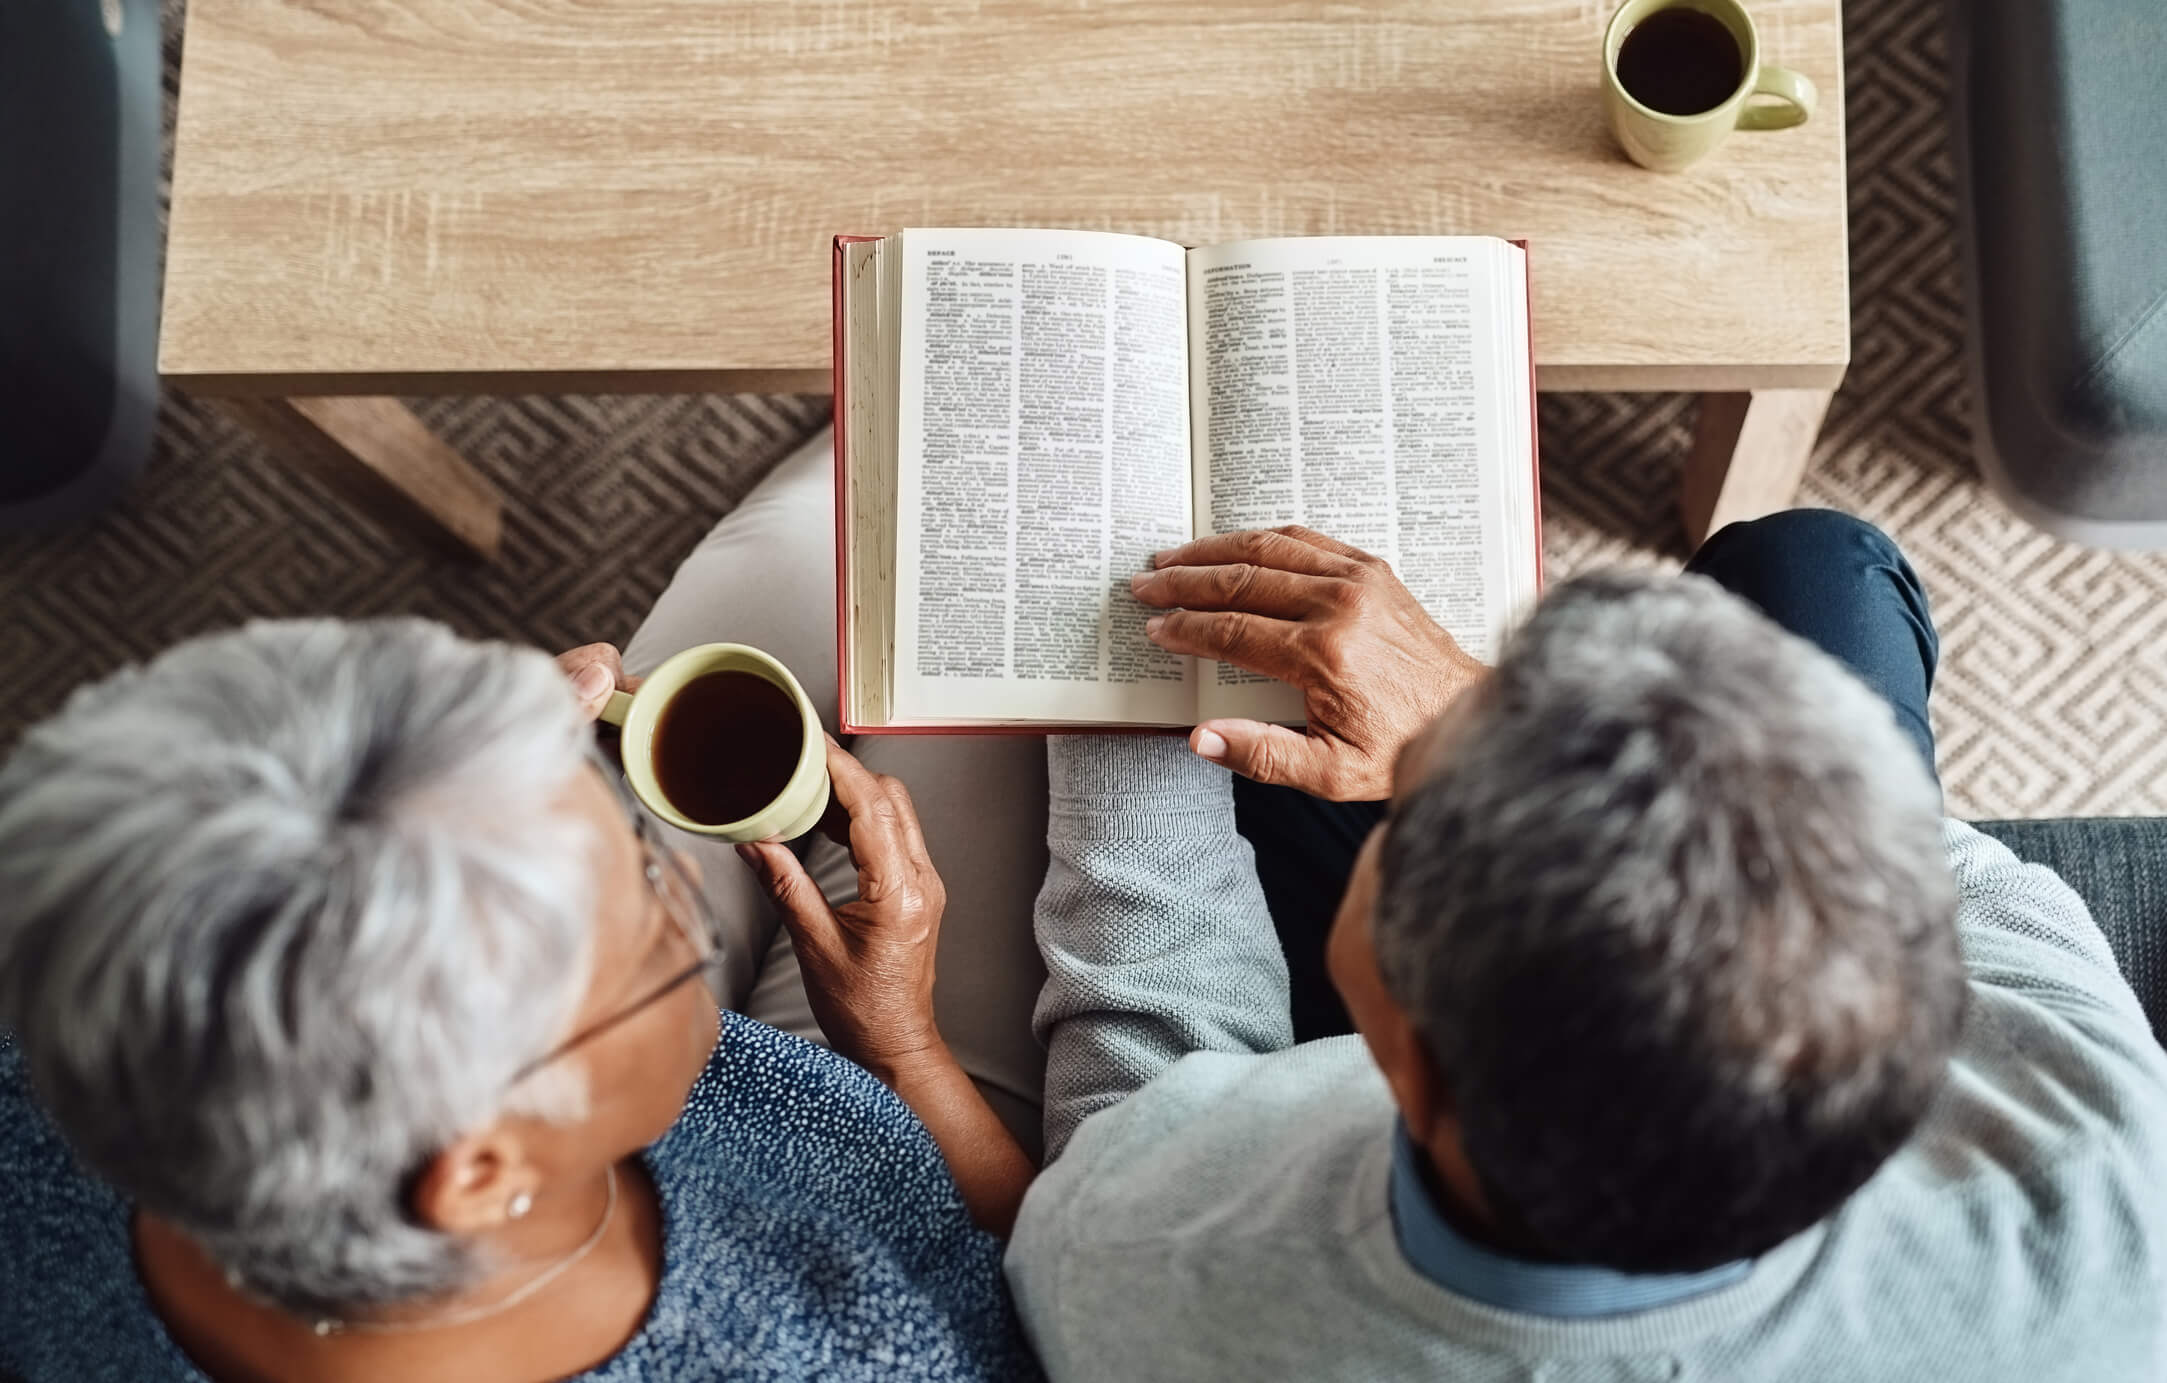 Seated elderly couple reading the Bible